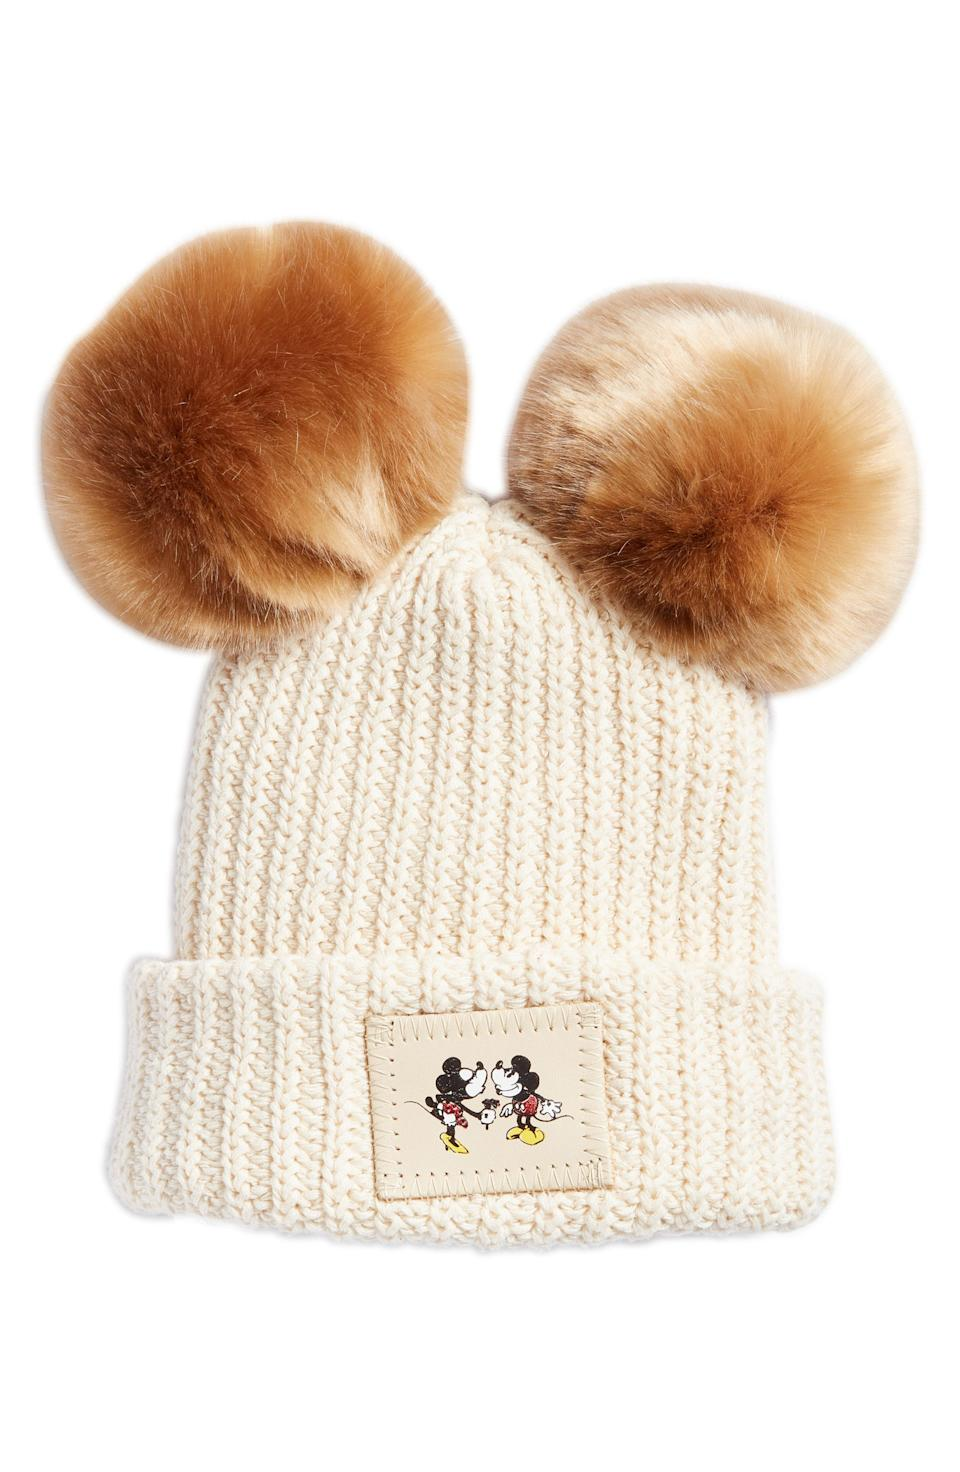 A Love Your Melon Disney double pom knit beanie at Nordstrom's pop-in.